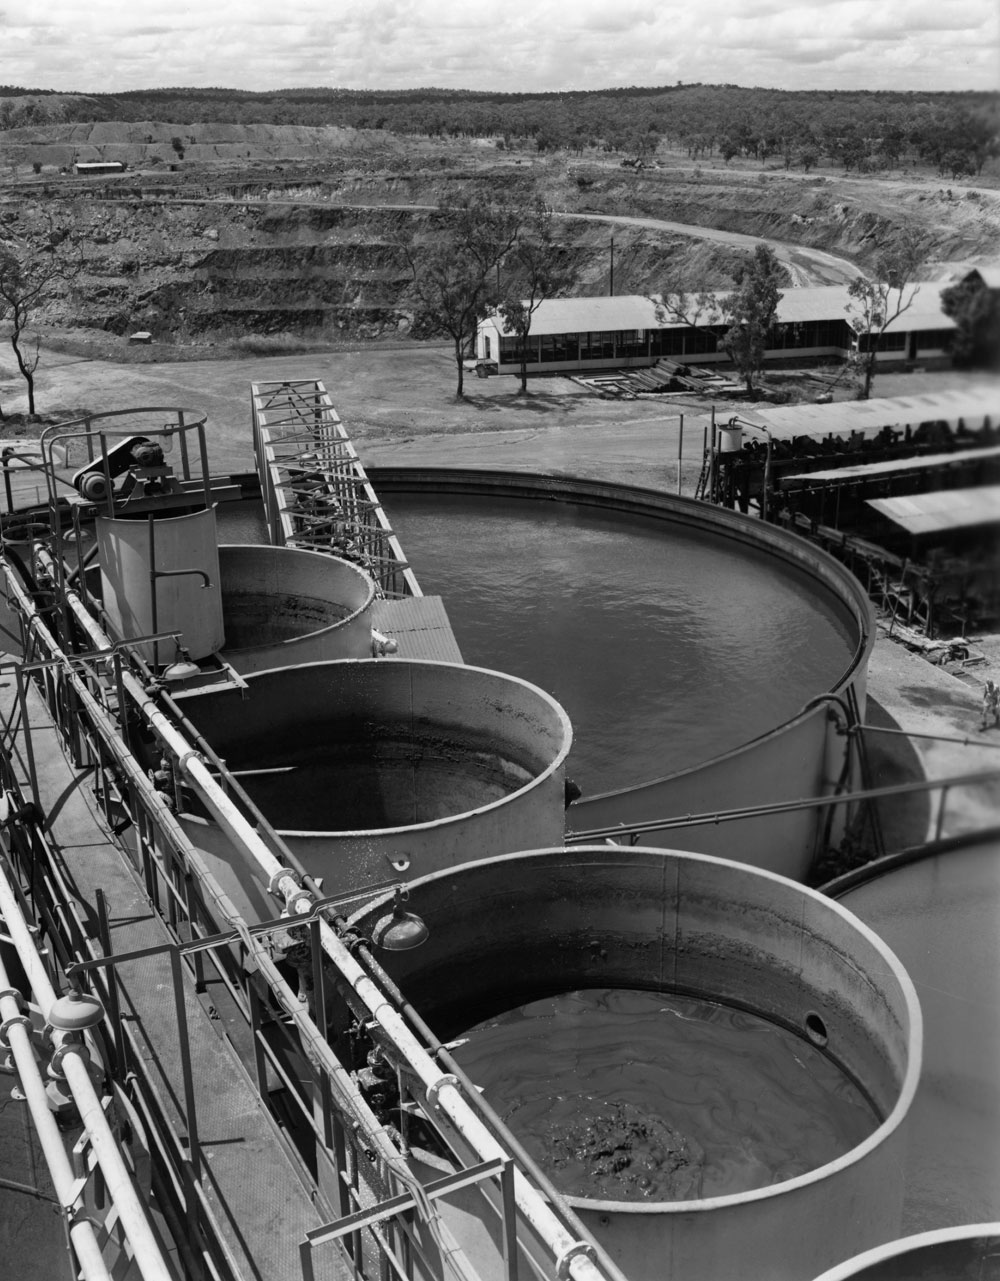 Treatment plant area in foreground with White's open cut pit in the background (1958). National Archives of Australia: A1200, L25505